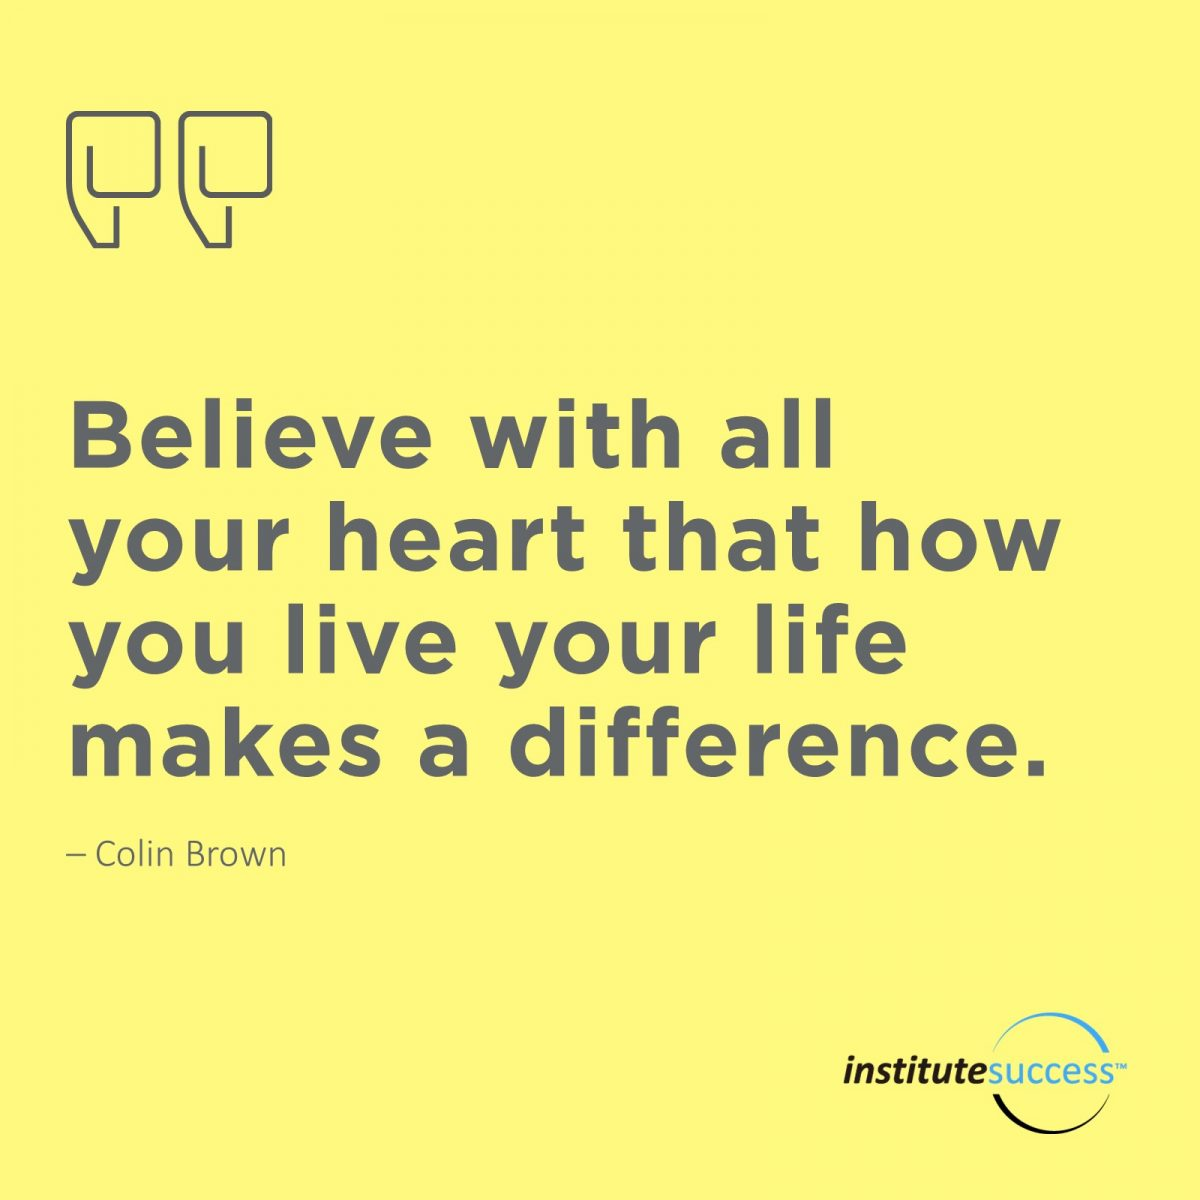 Believe with all your heart that how you live your life makes a difference. Colin Brown